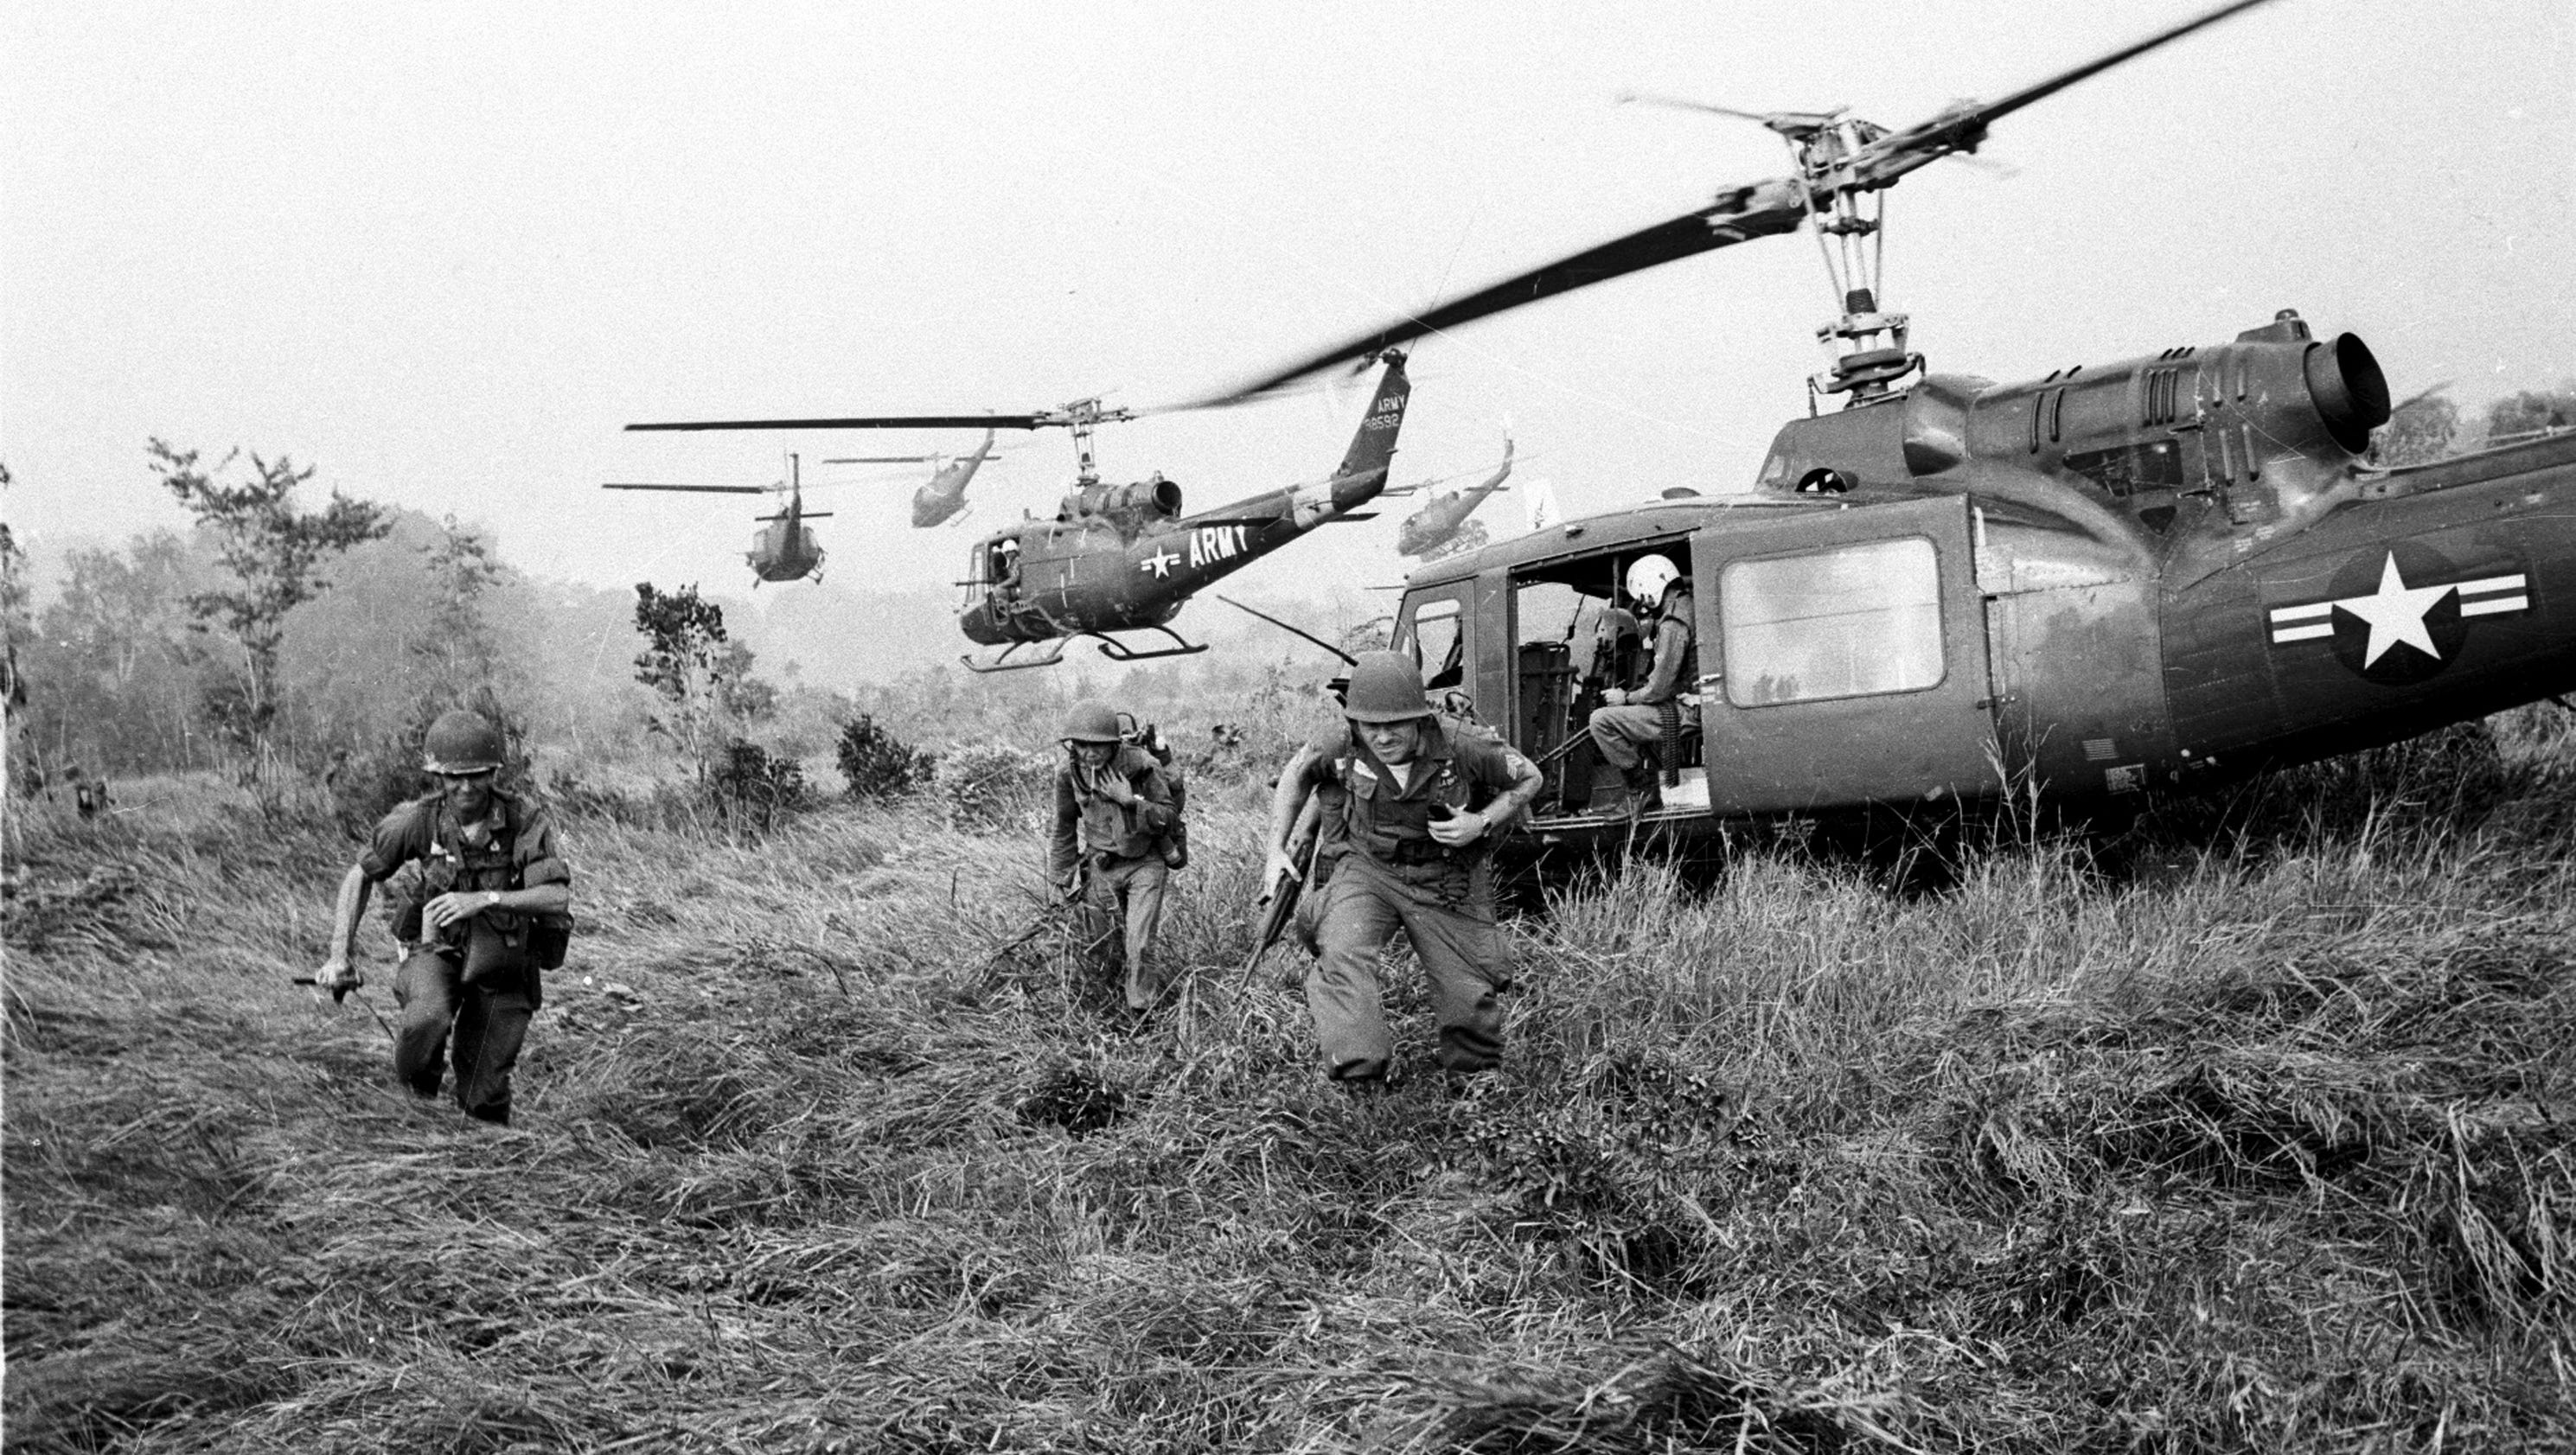 an analysis of vietnam war The vietnam war: a brief analysis essay - time does not heal all wounds, though it does impose fresh ones that require consideration still, even though the cold war.